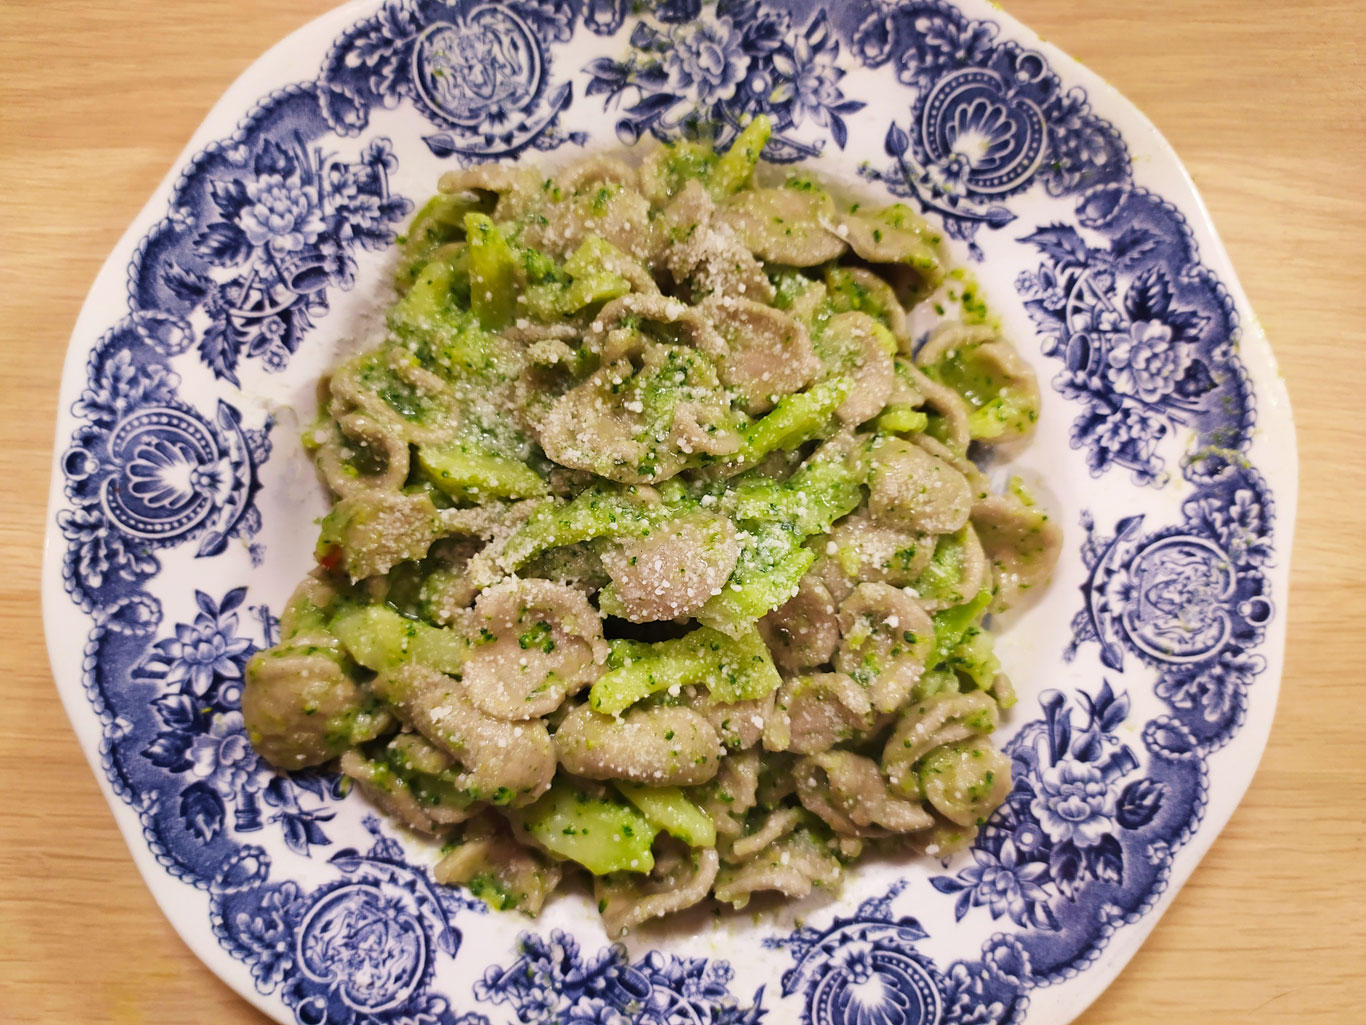 Orecchiette with Broccoli and Pecorino Cheese Cream Sauce